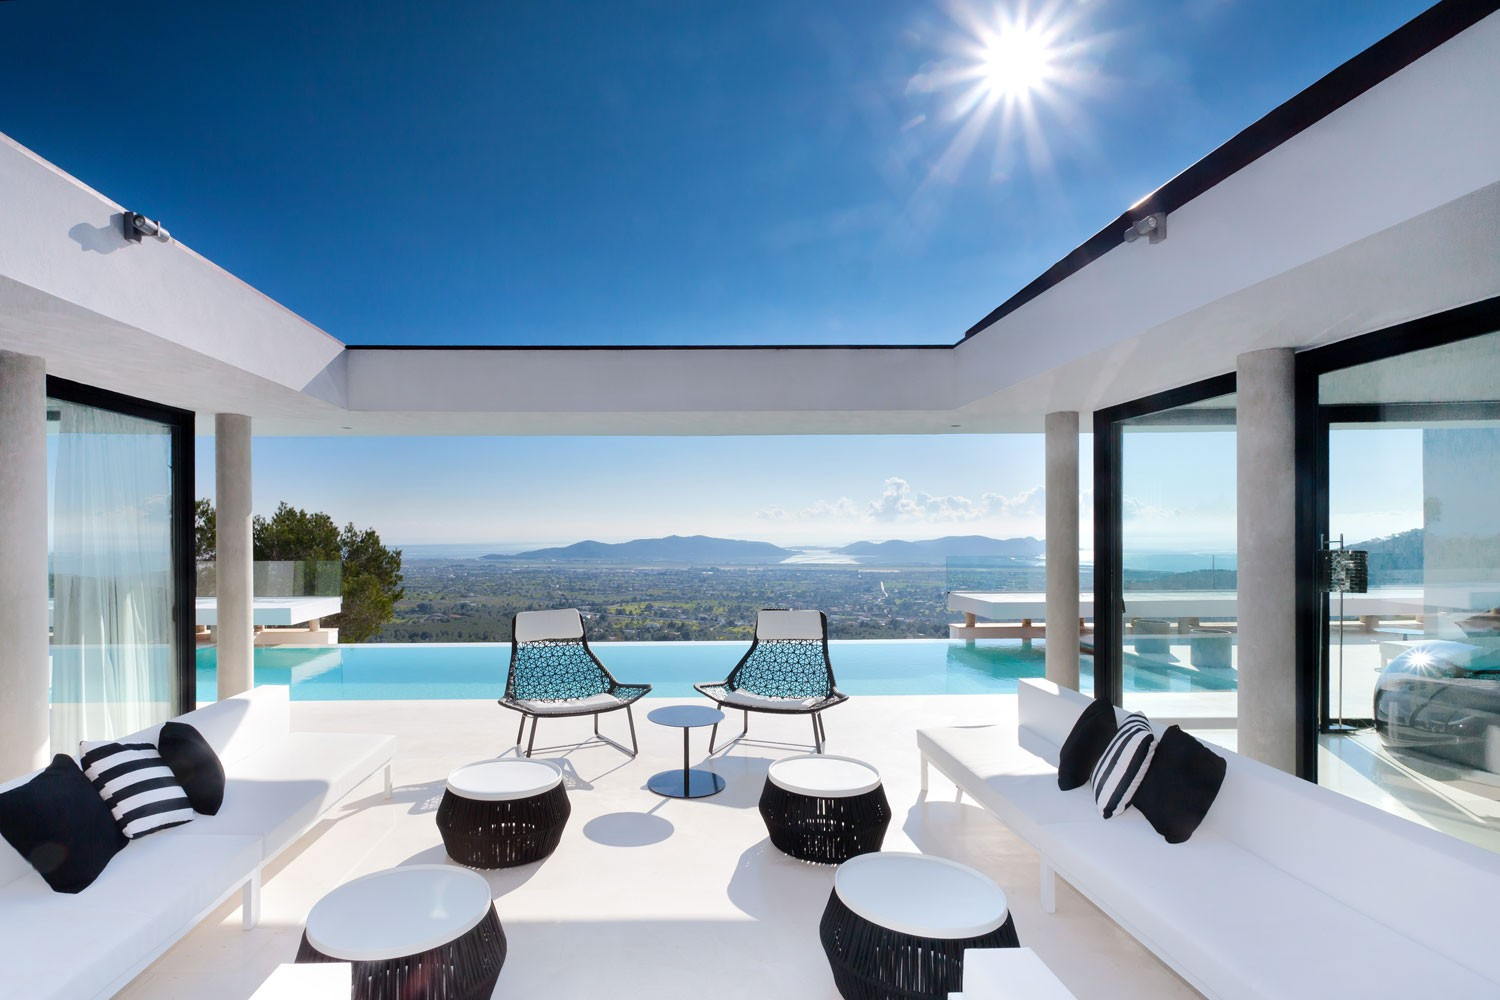 Villas to rent in Ibiza - Property Listing - Ibiza Selected